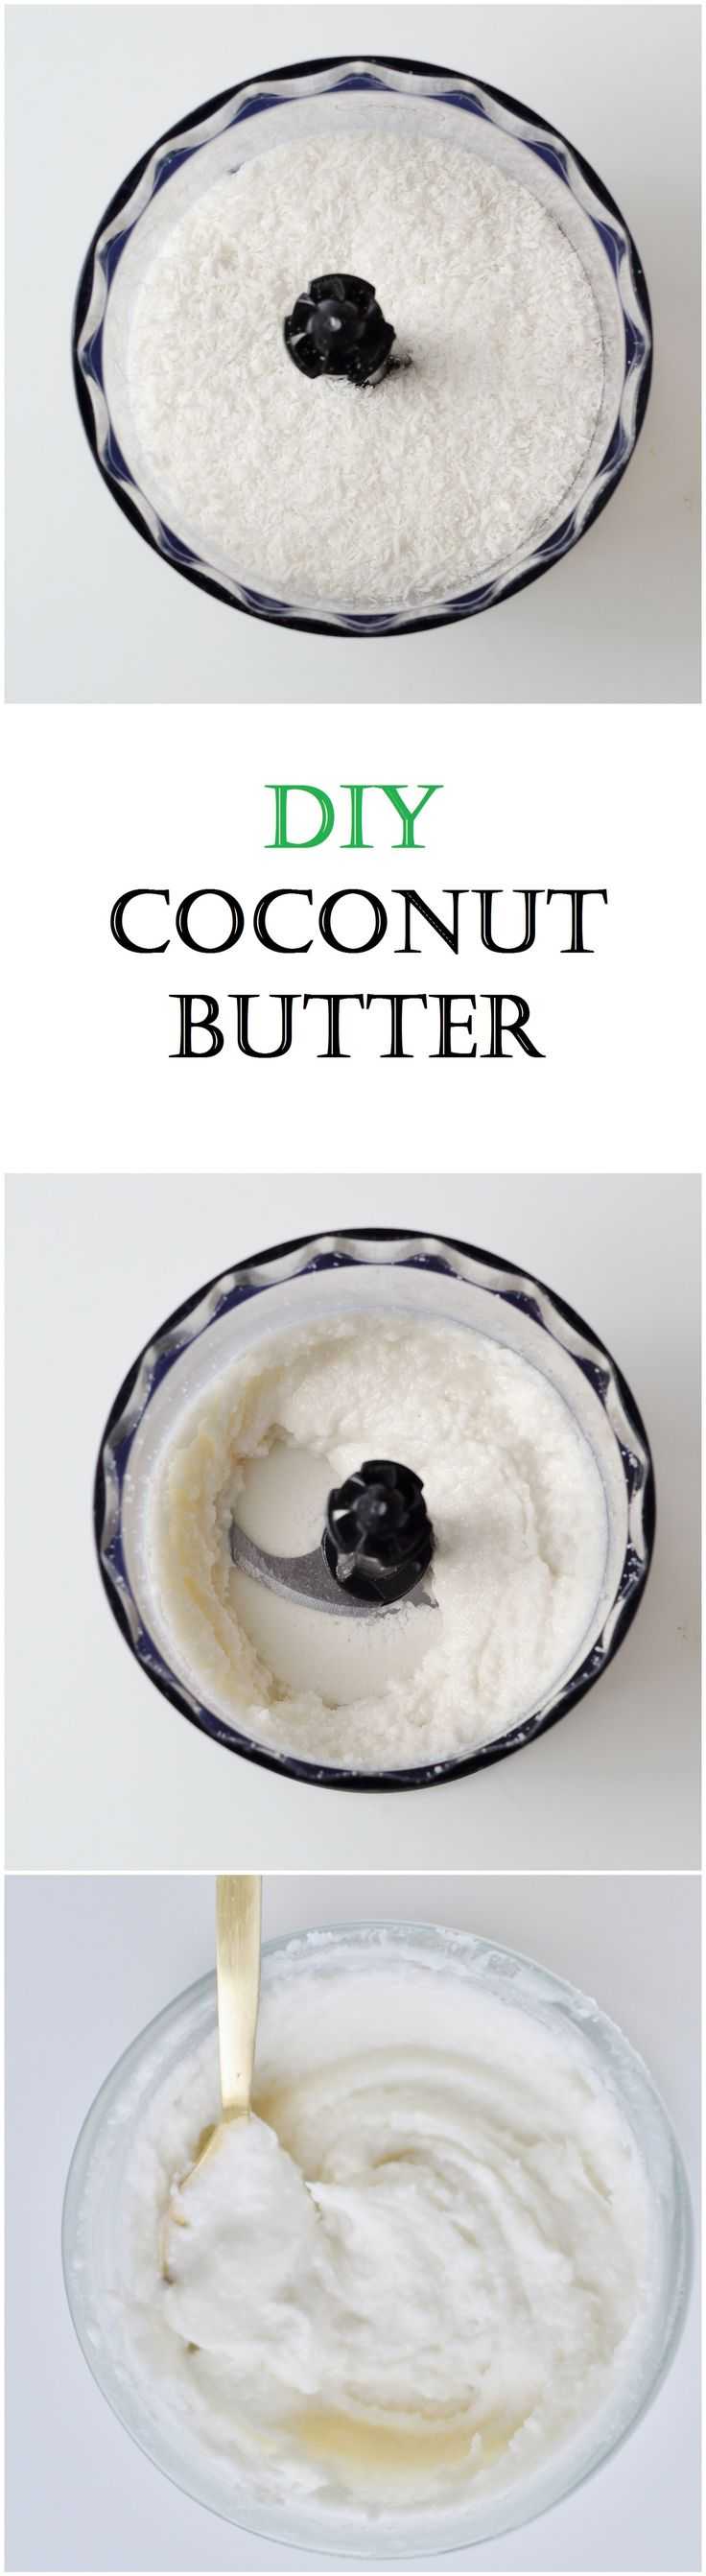 DIY Coconut Butter Recipe and Tutorial - life changing